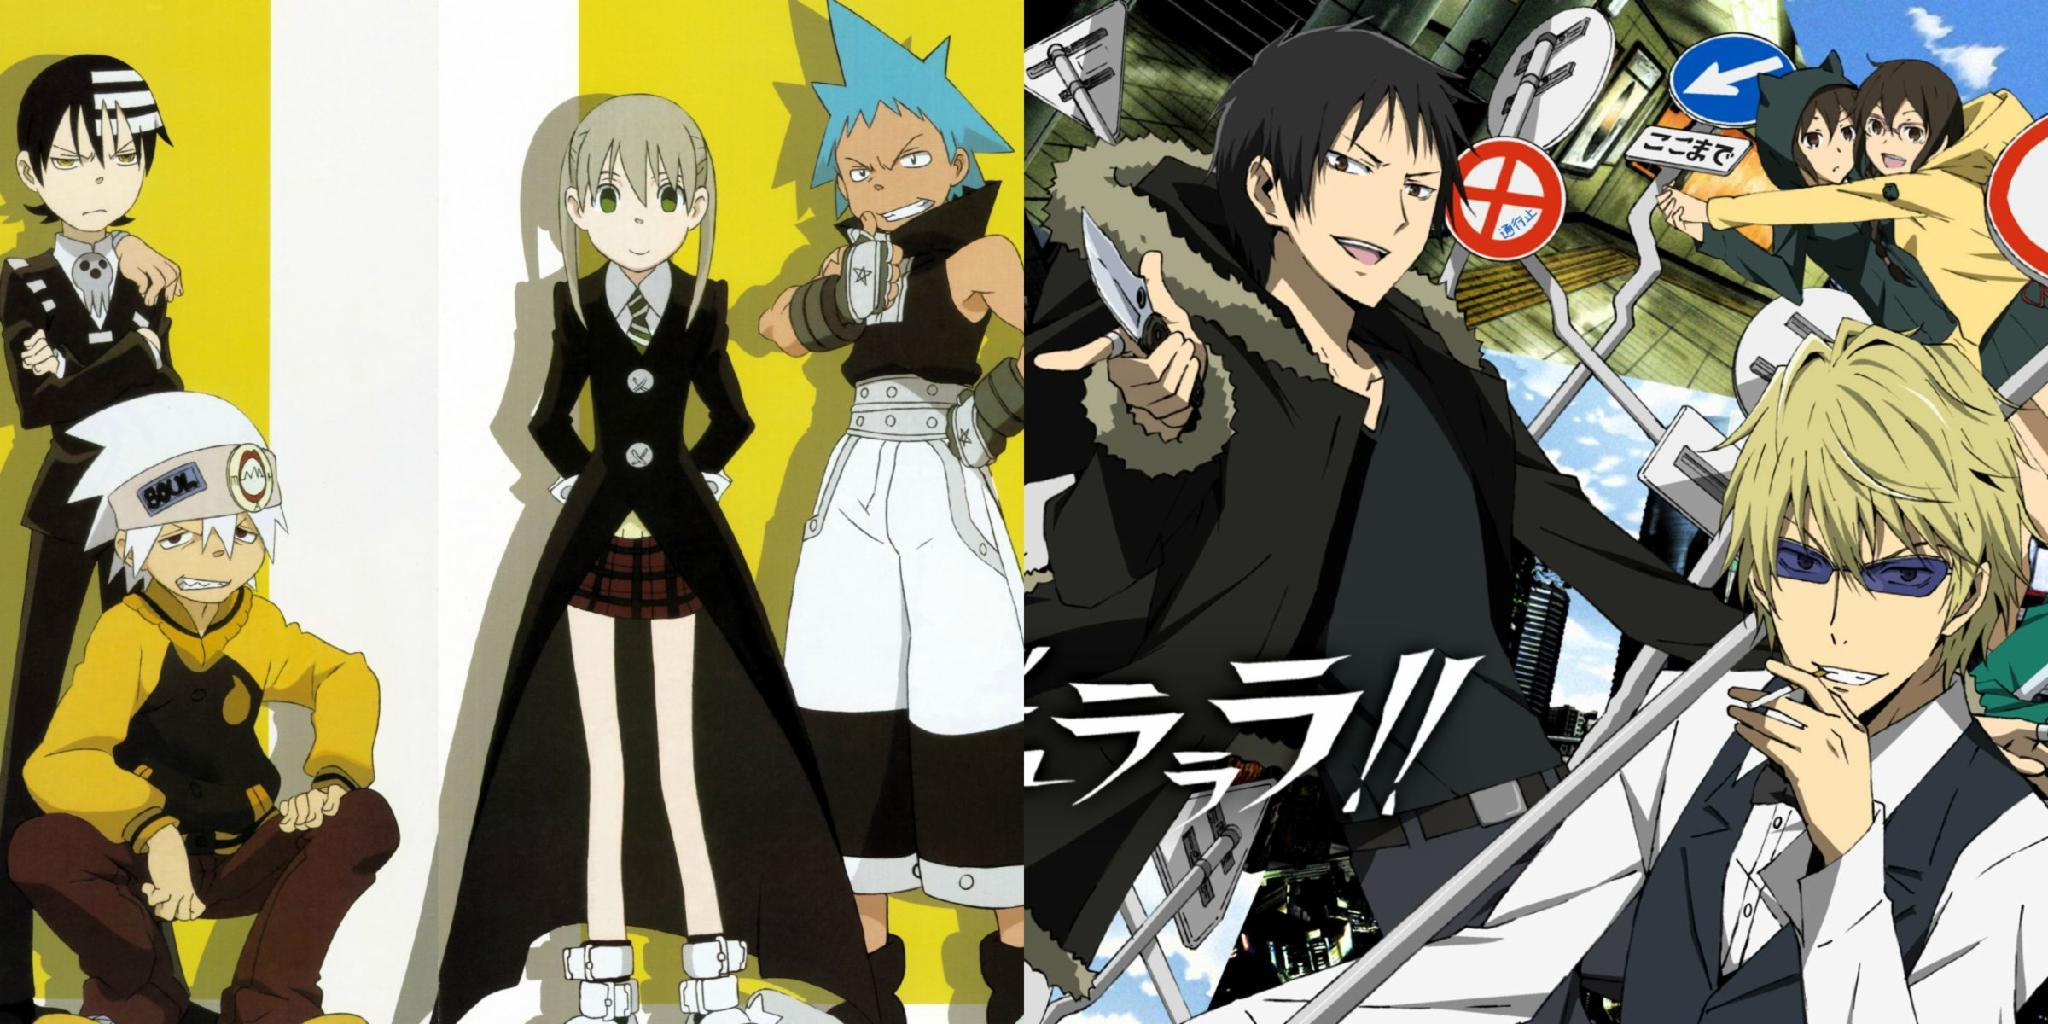 Which cosplay would be more recognized? Soul Eater? or Durarara